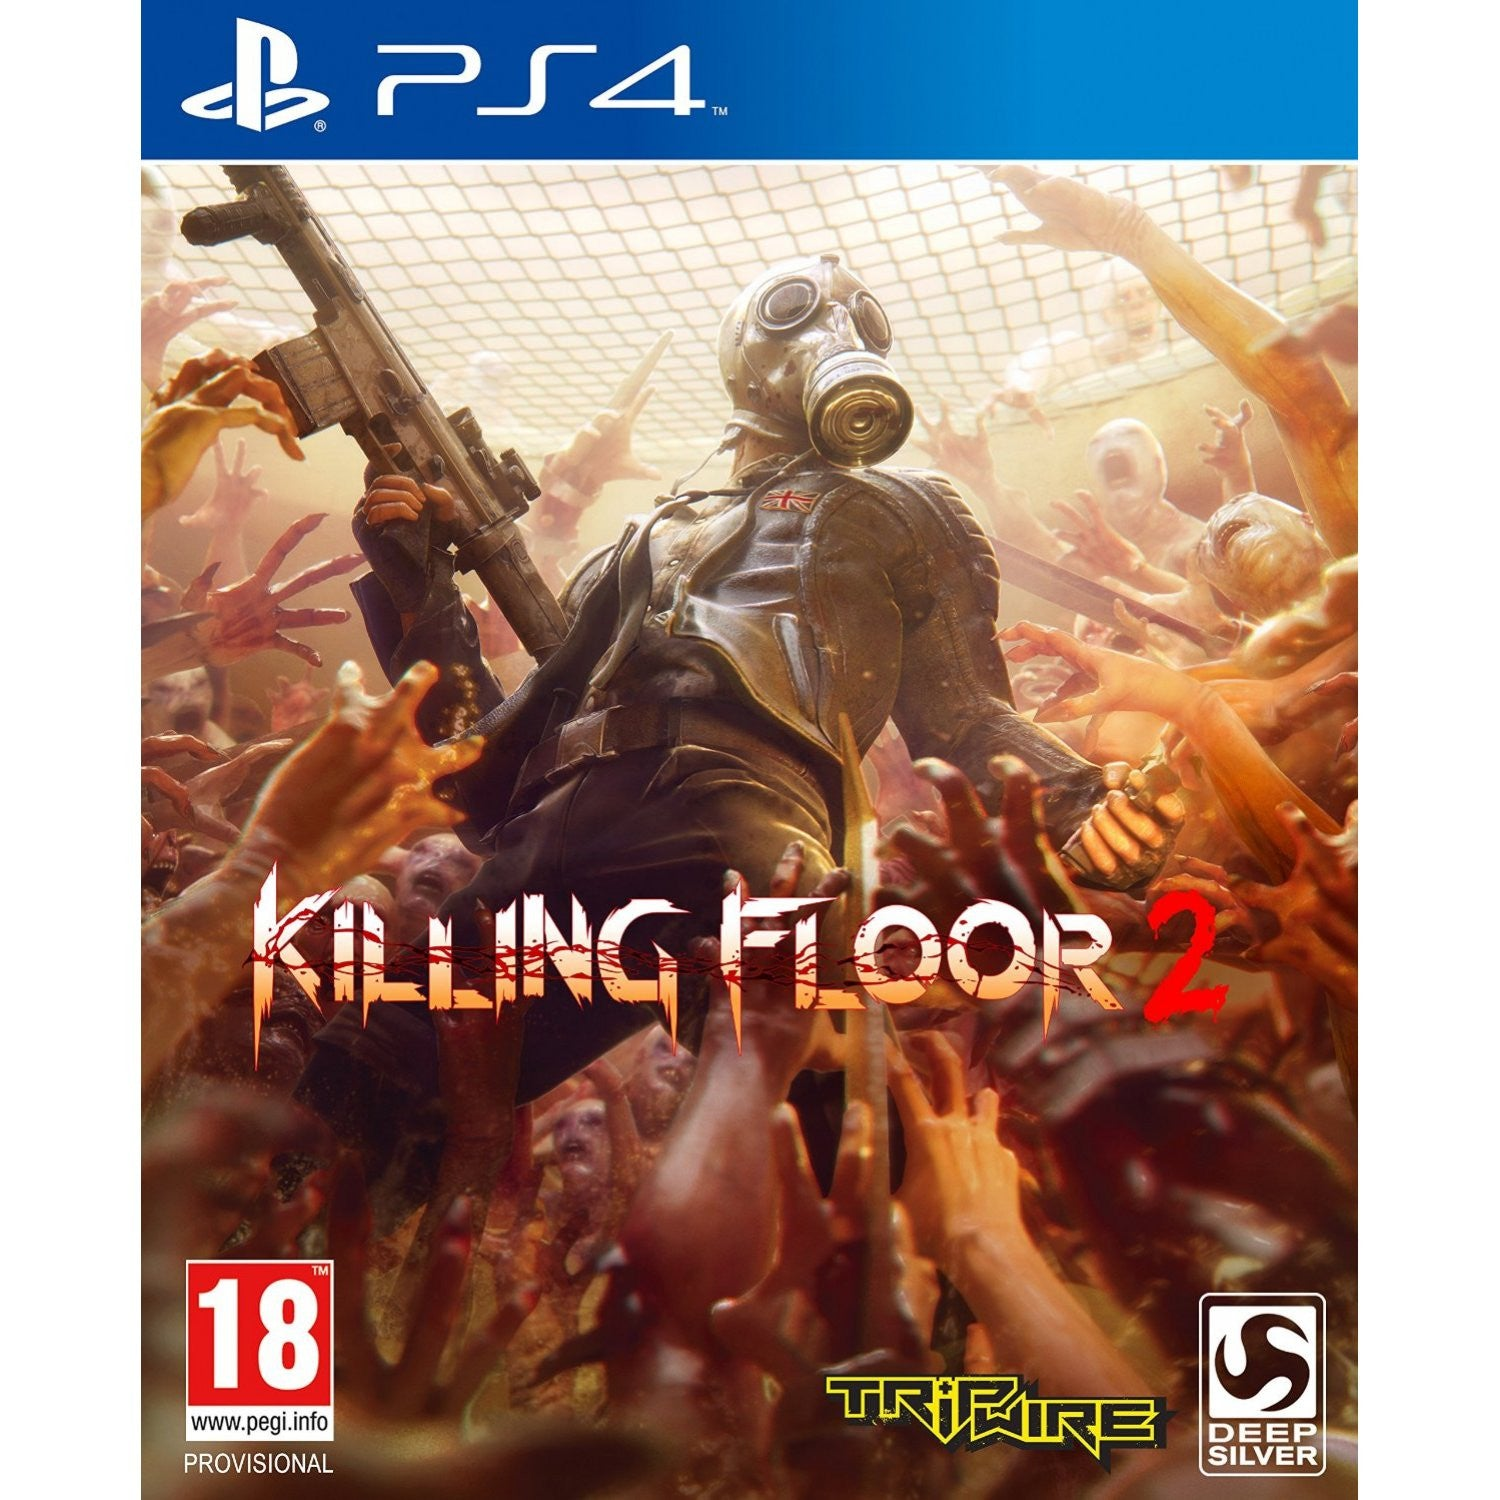 Pre Order Metal Gear Solid V The Phantom Pain English Page 21 Ps4 Bravo Team Vr Aim Controller Region 3 Killing Floor 2